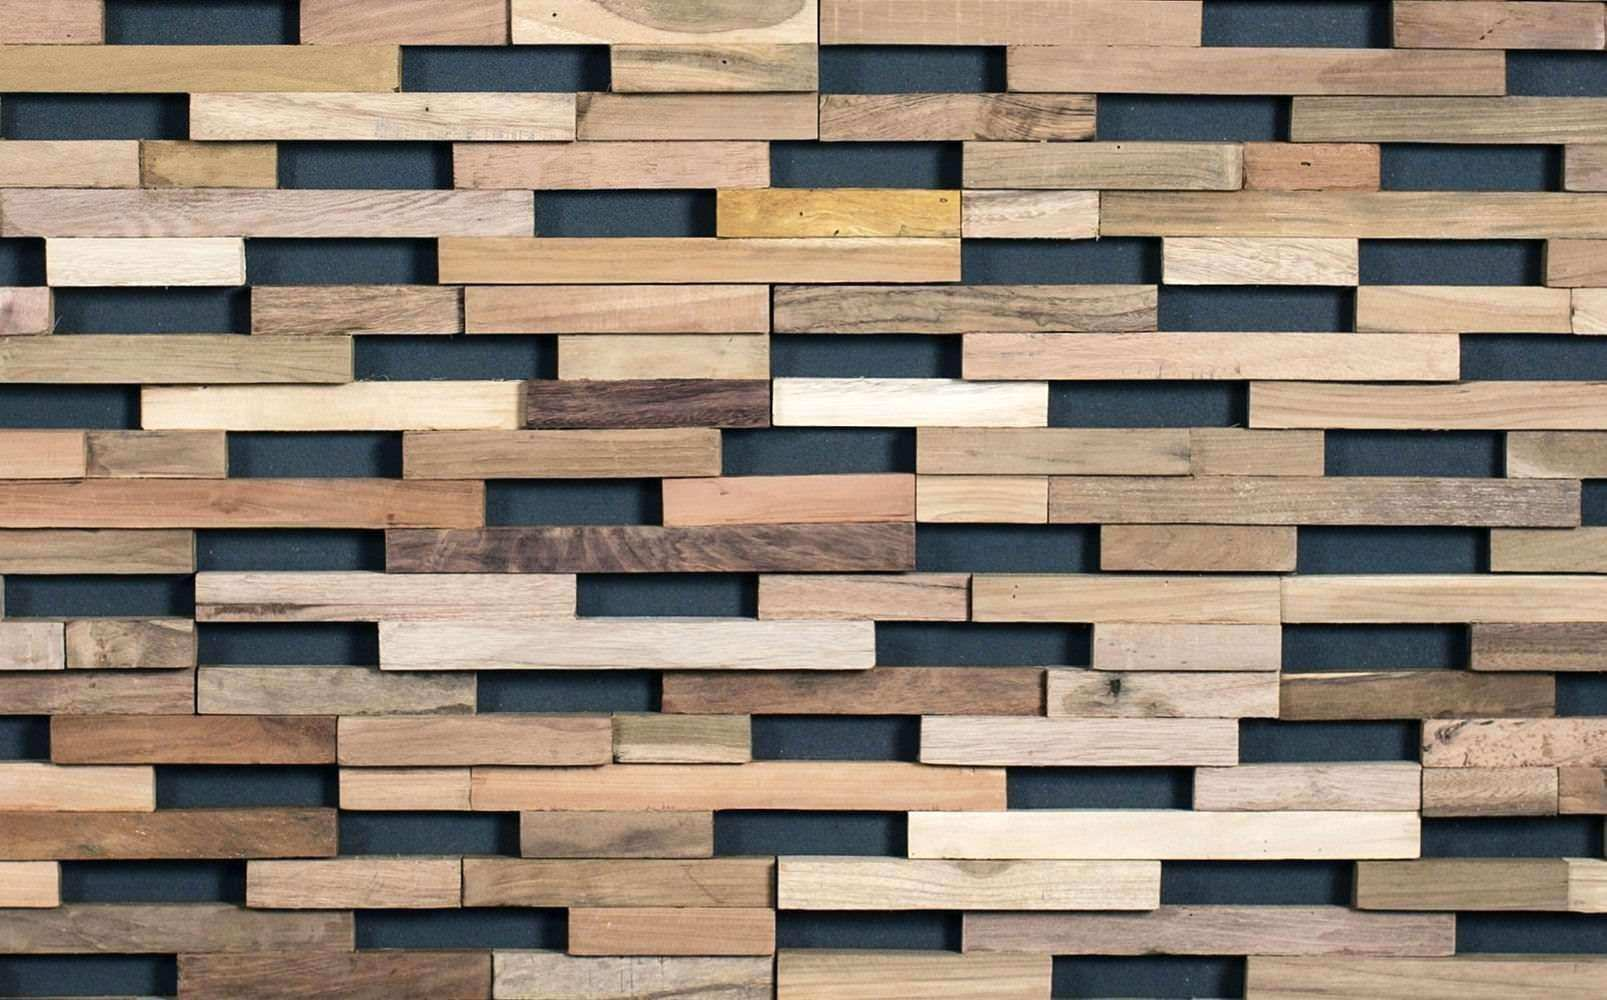 Best Decorative Paneling for Walls Ideas — Decor Trends